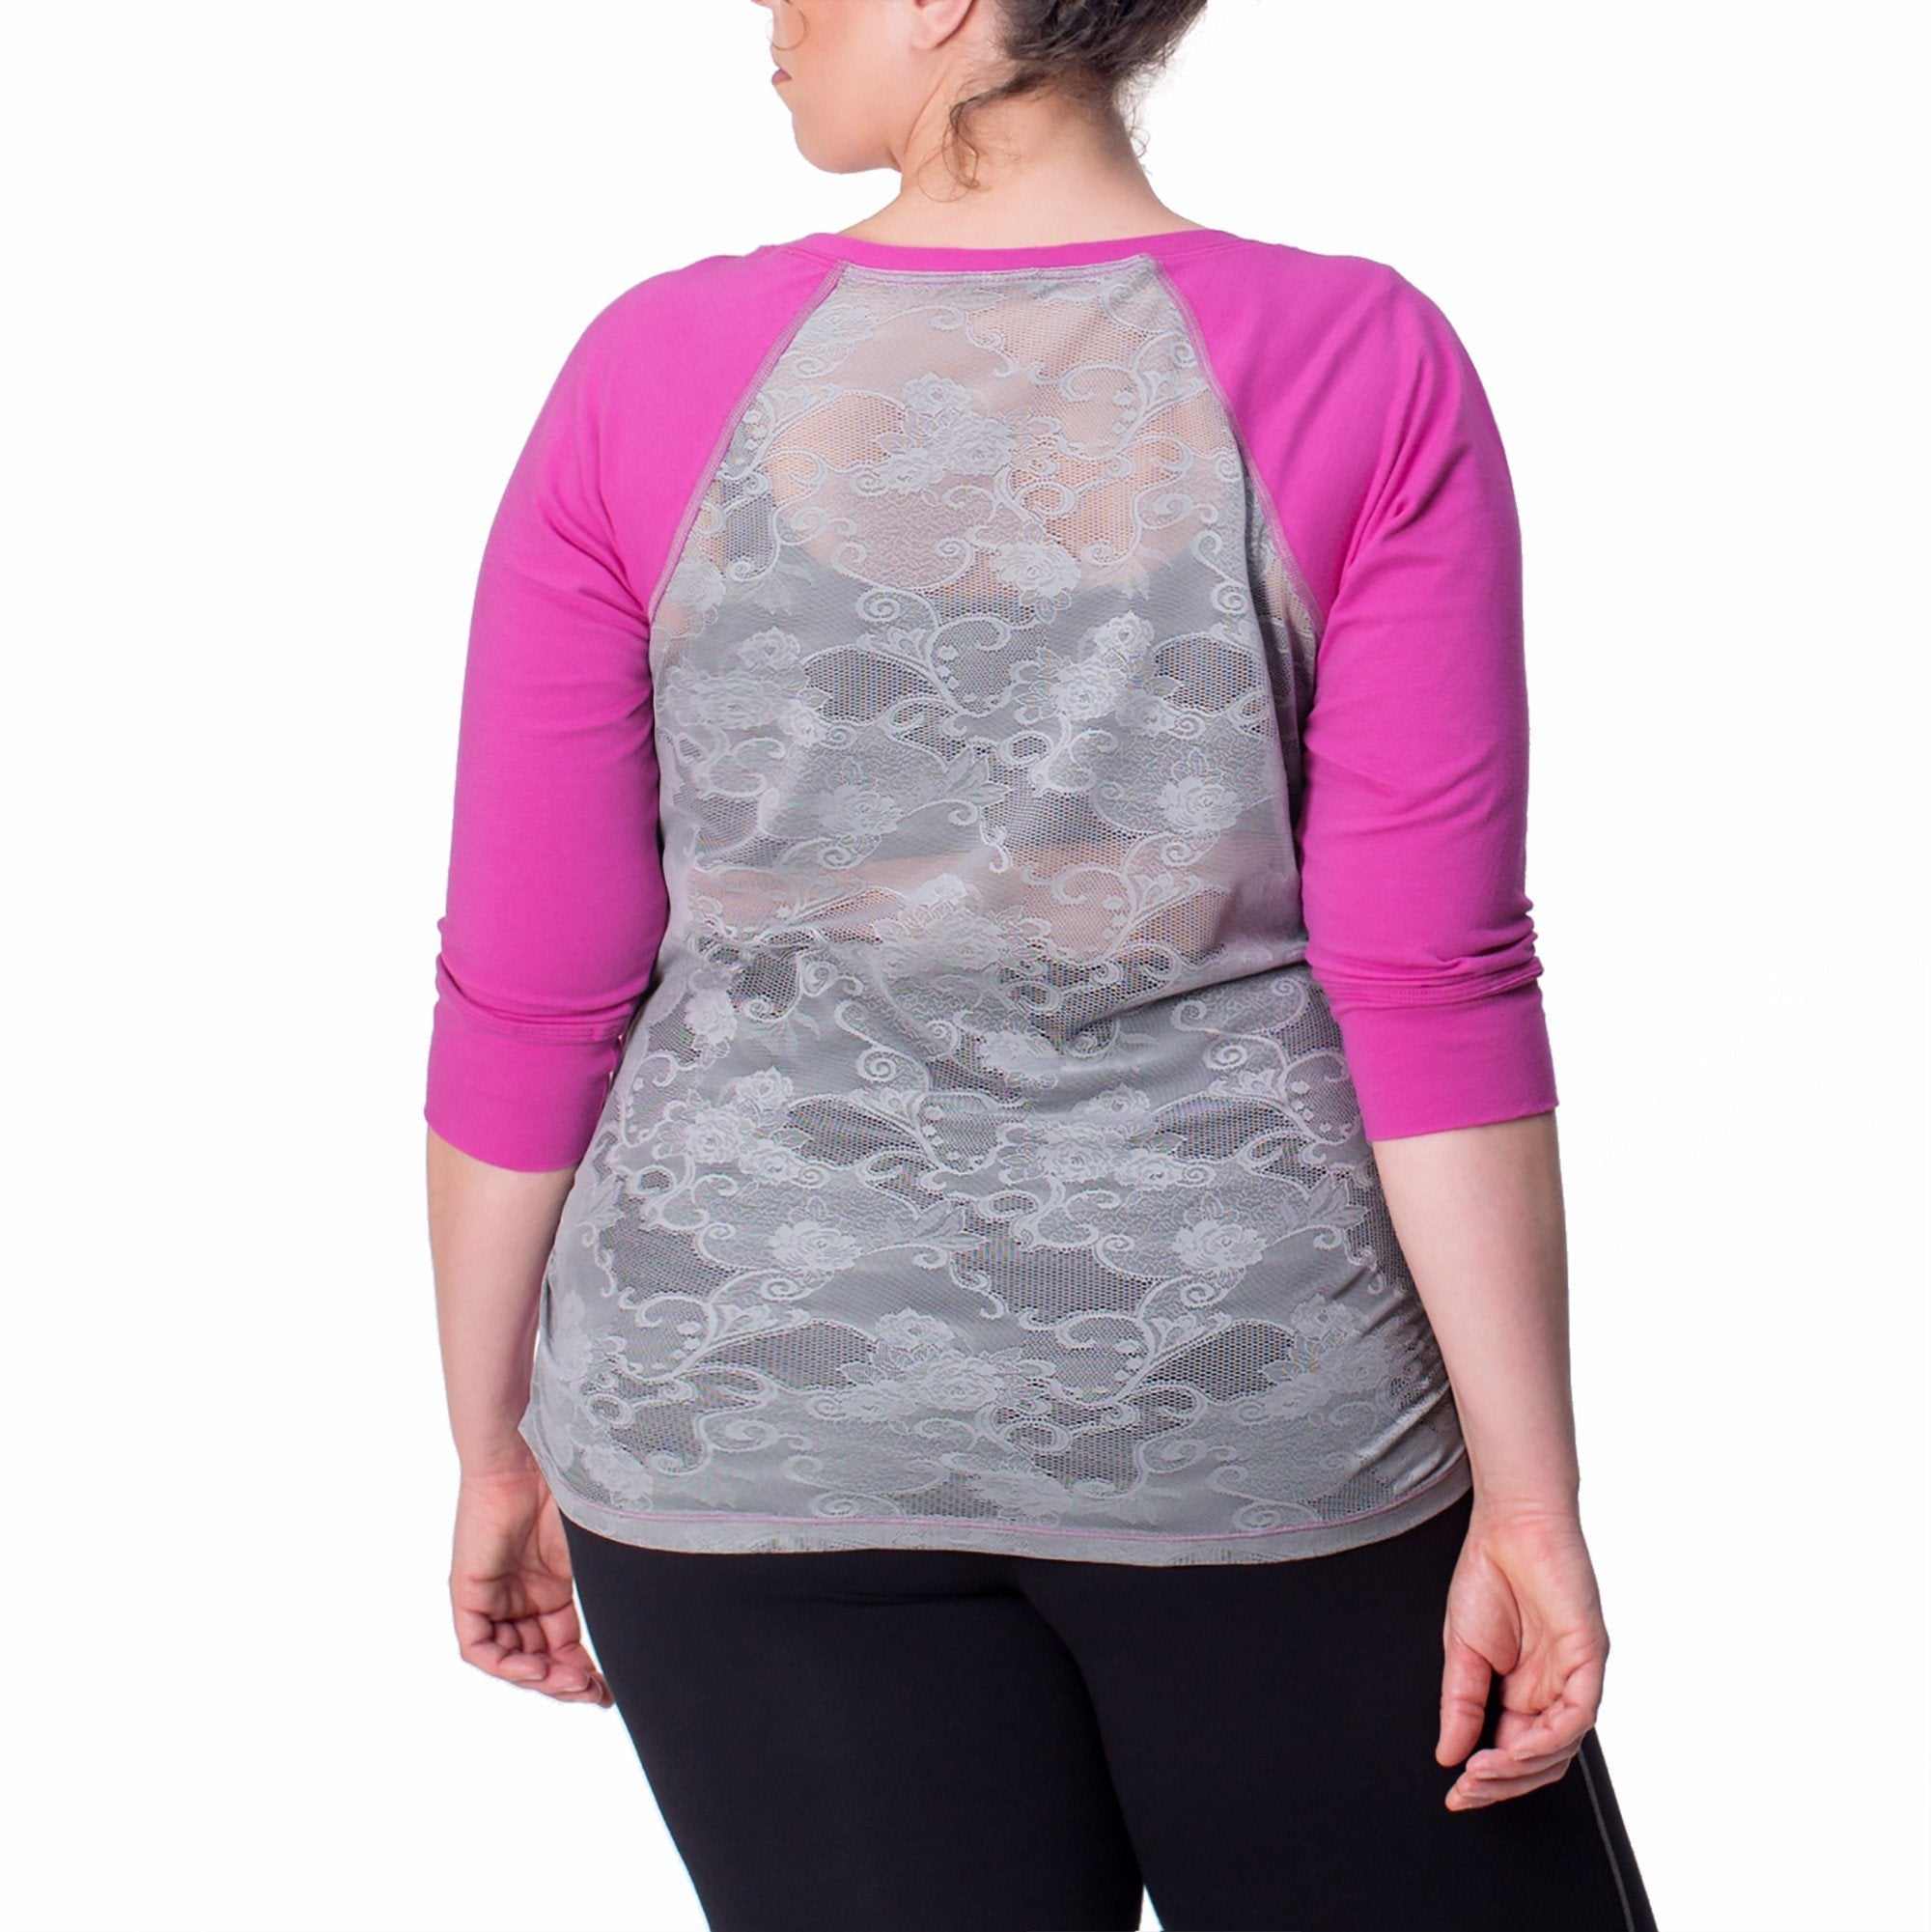 Elaine Tee - Rainbeau Curves, 18/20 / Black, activewear, athleisure, fitness, workout, gym, performance, womens, ladies, plus size, curvy, full figured, spandex, cotton, polyester - 1